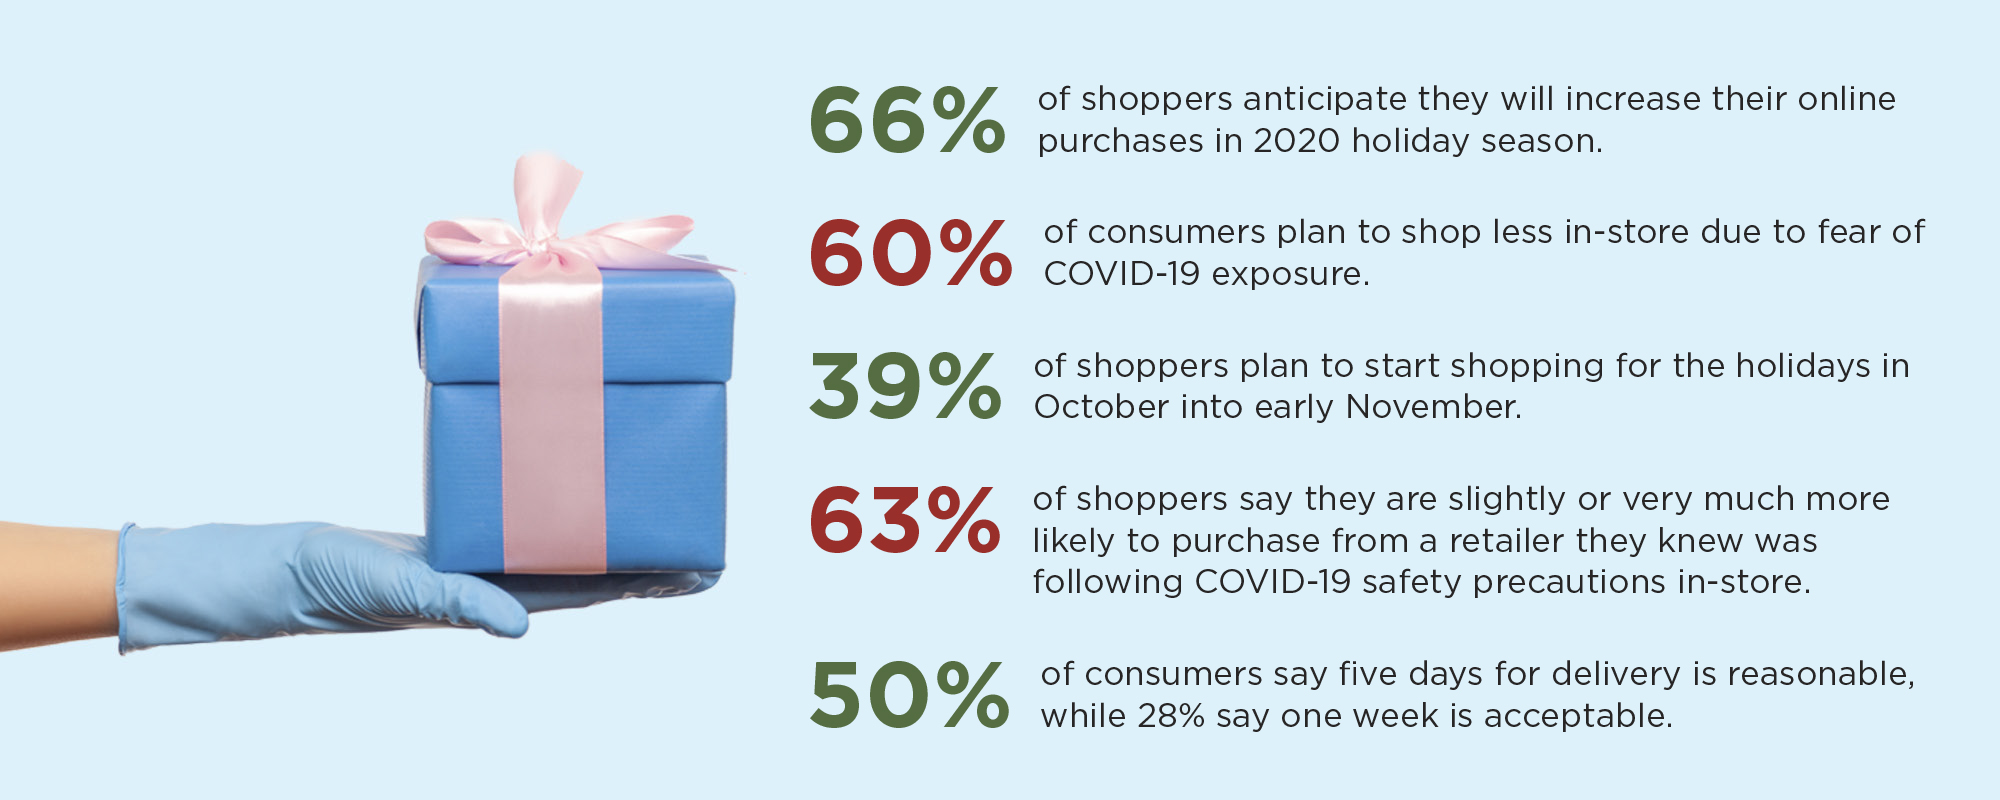 66% of shoppers anticipate they will increase their online purchases in the 2020 holiday season, and other facts